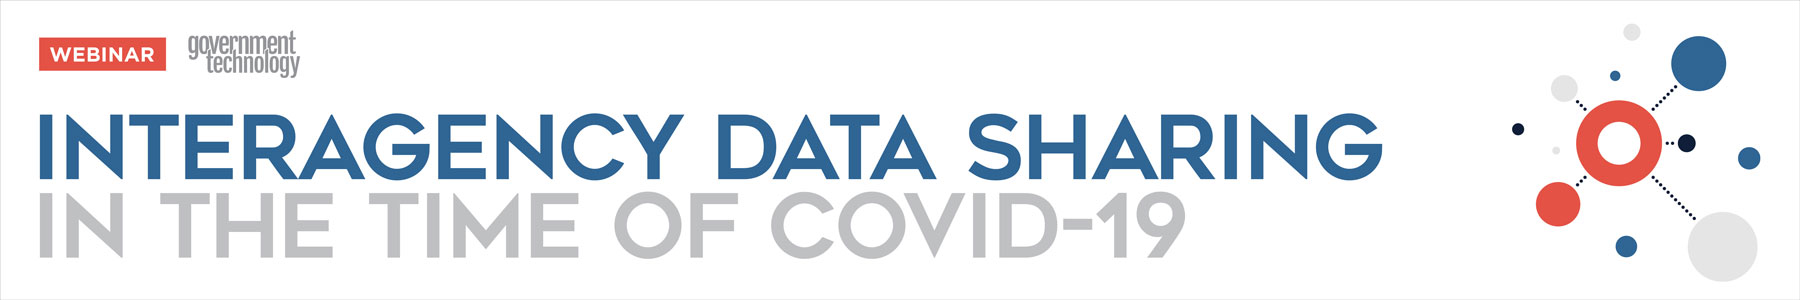 Interagency Data Sharing in the Time of COVID-19